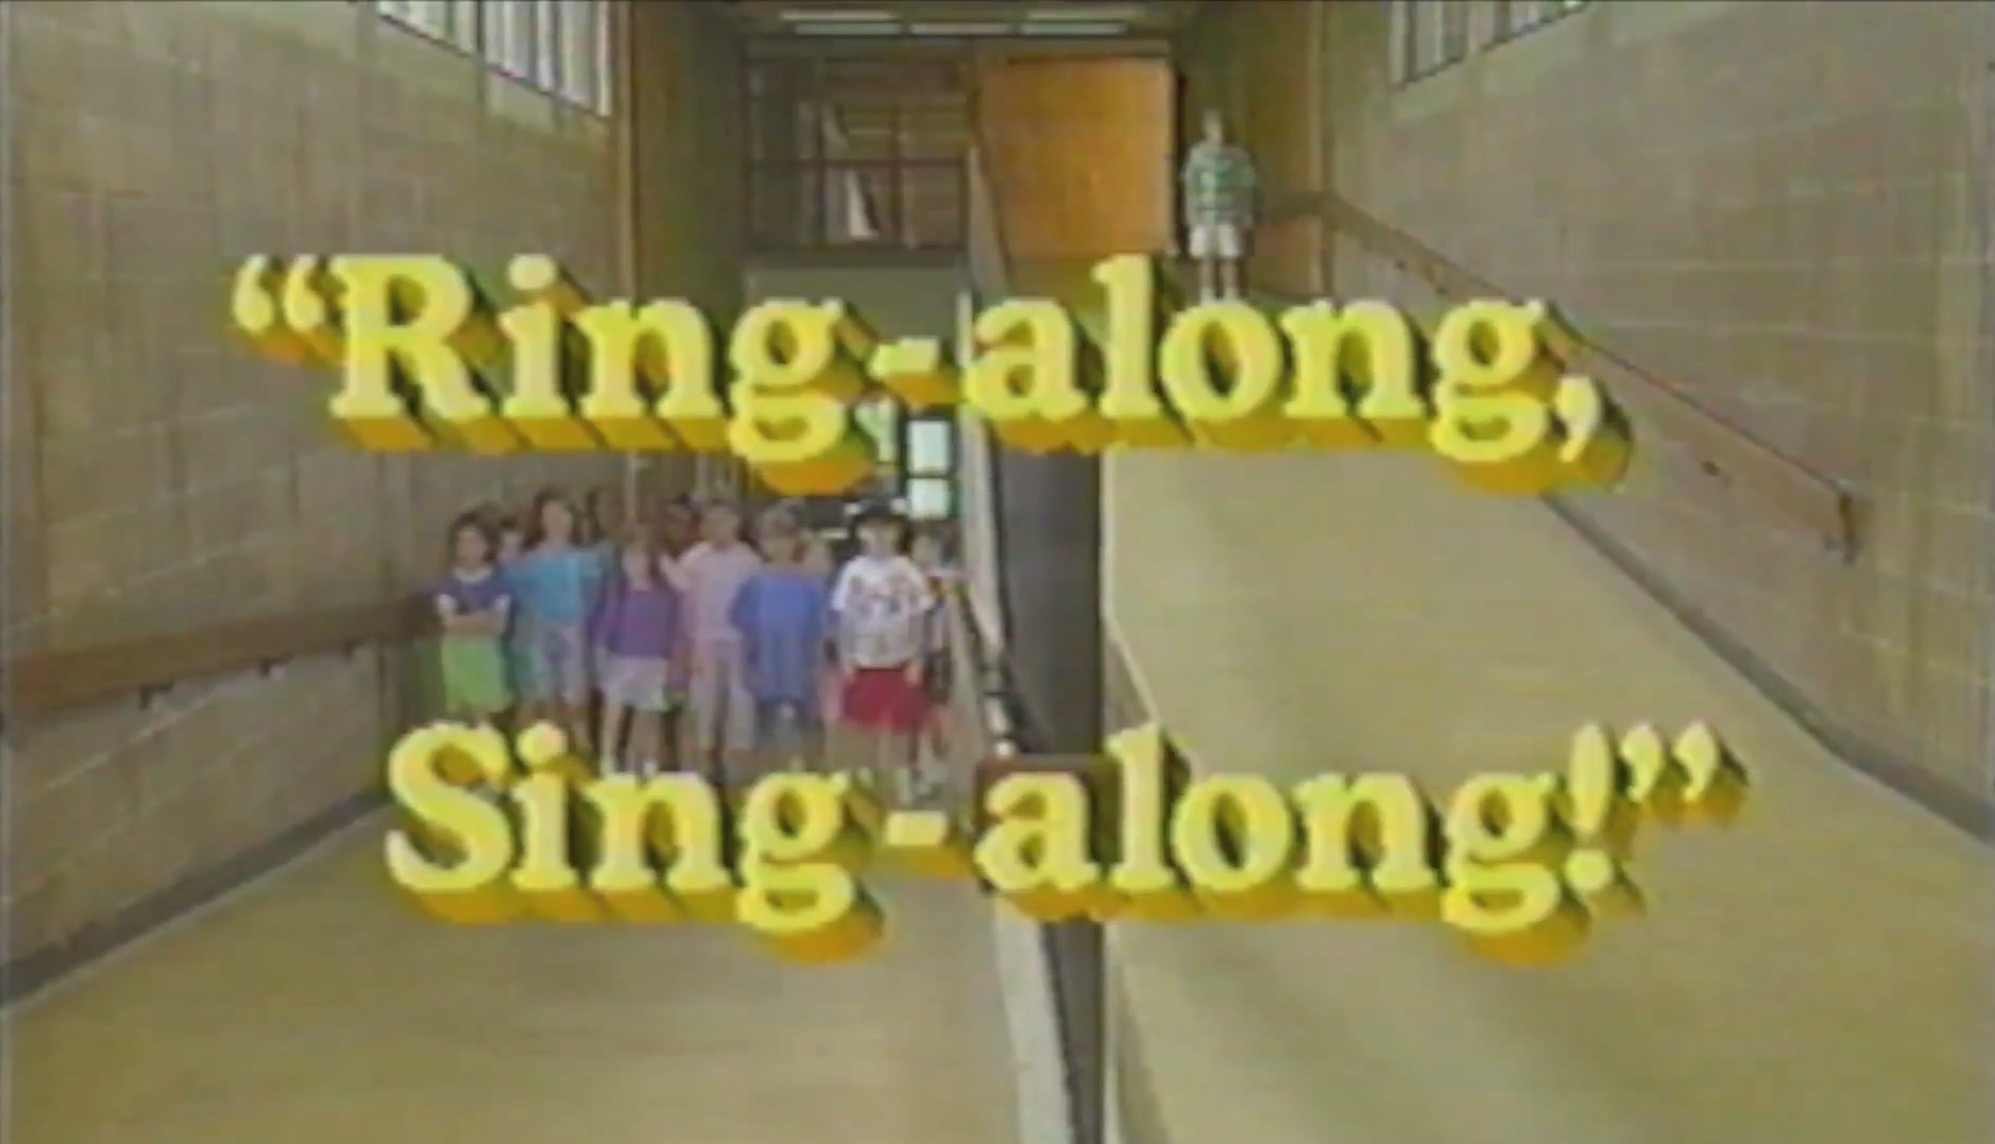 Ring along sing along title.jpg